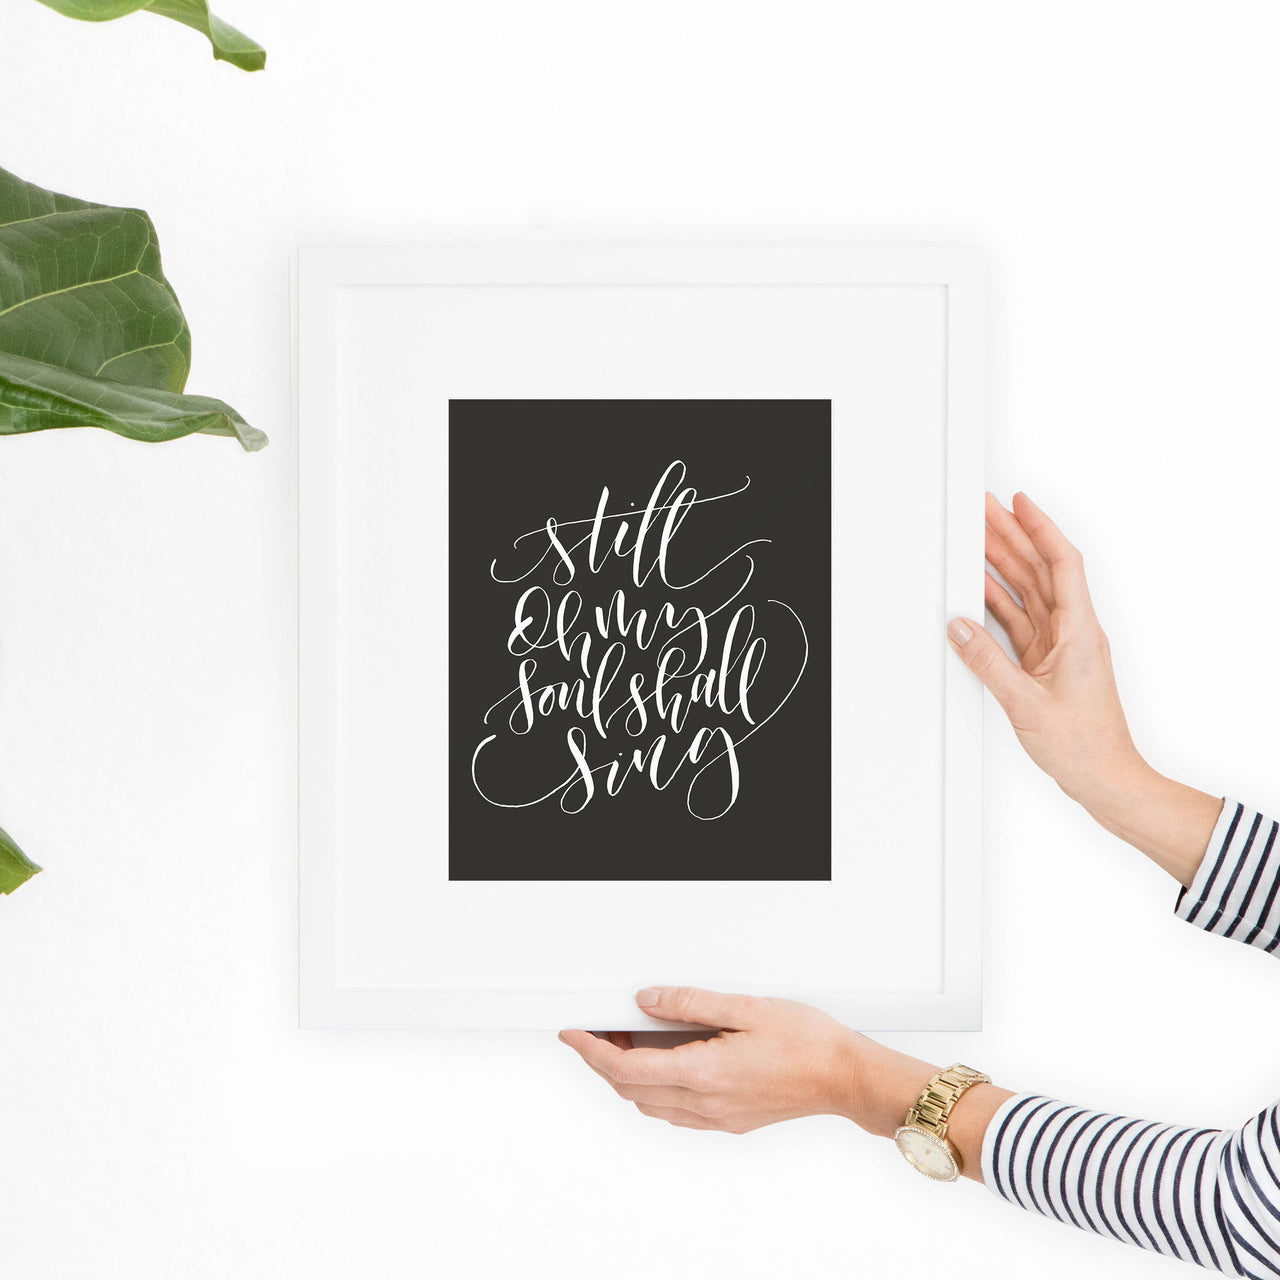 "Nearer My God to Thee ""Still Oh My Soul Shall Sing"" Printable Art - Hewitt Avenue"